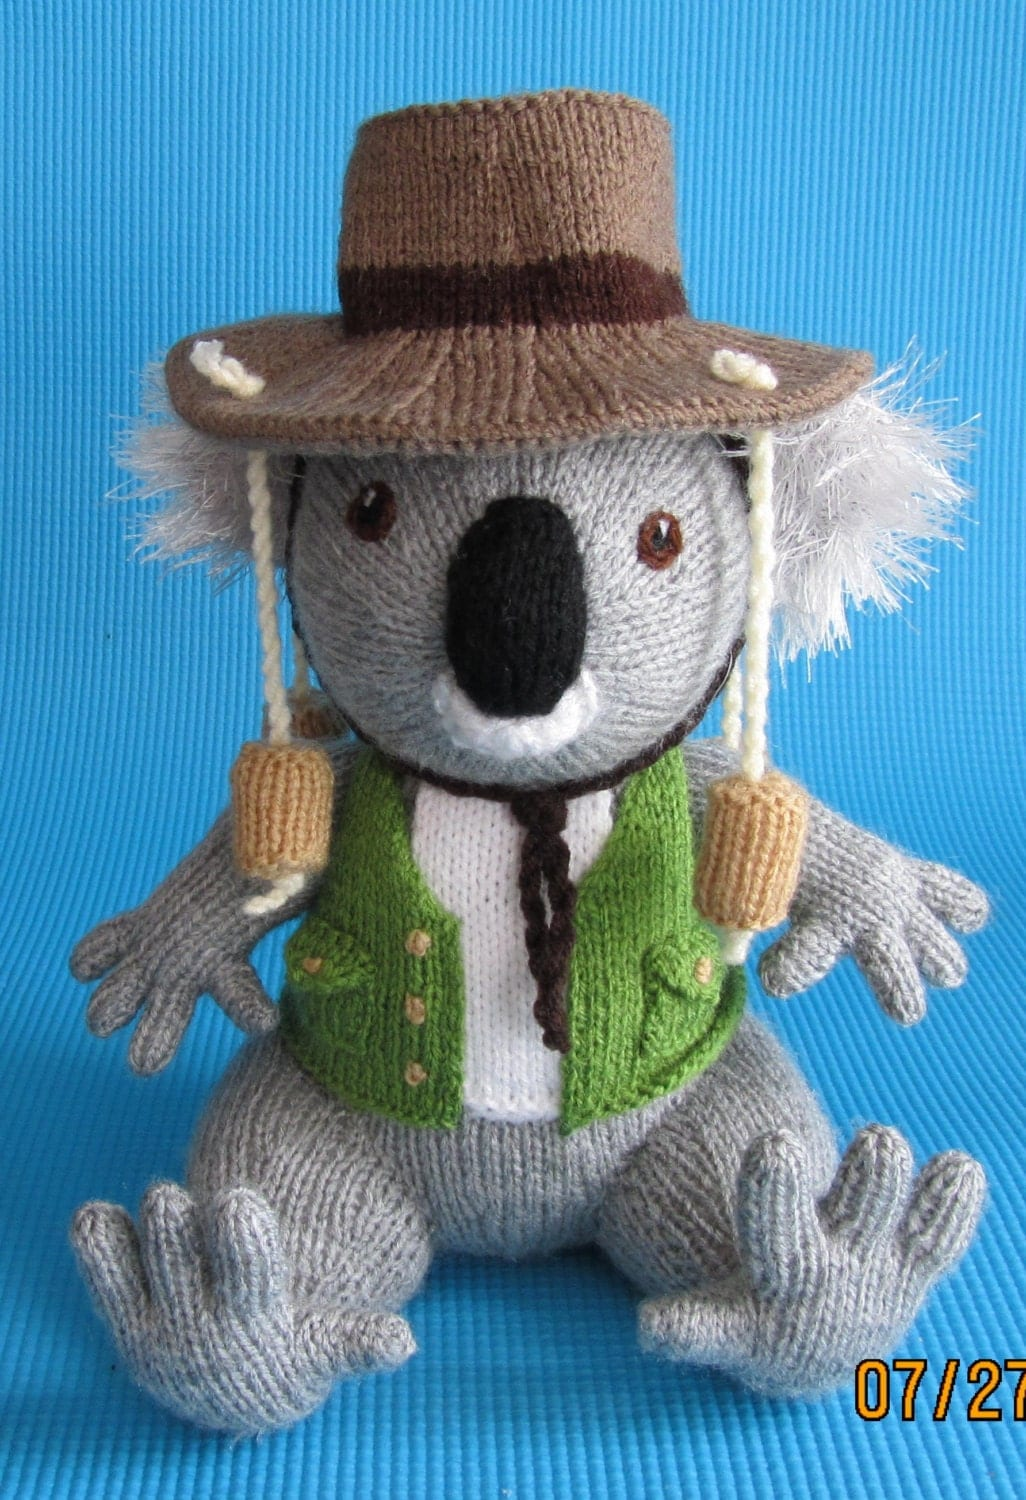 Free Pattern For Knitted Leg Warmers : Items similar to Hand Knitted Toy Outback Ossie from Alan Dart pattern